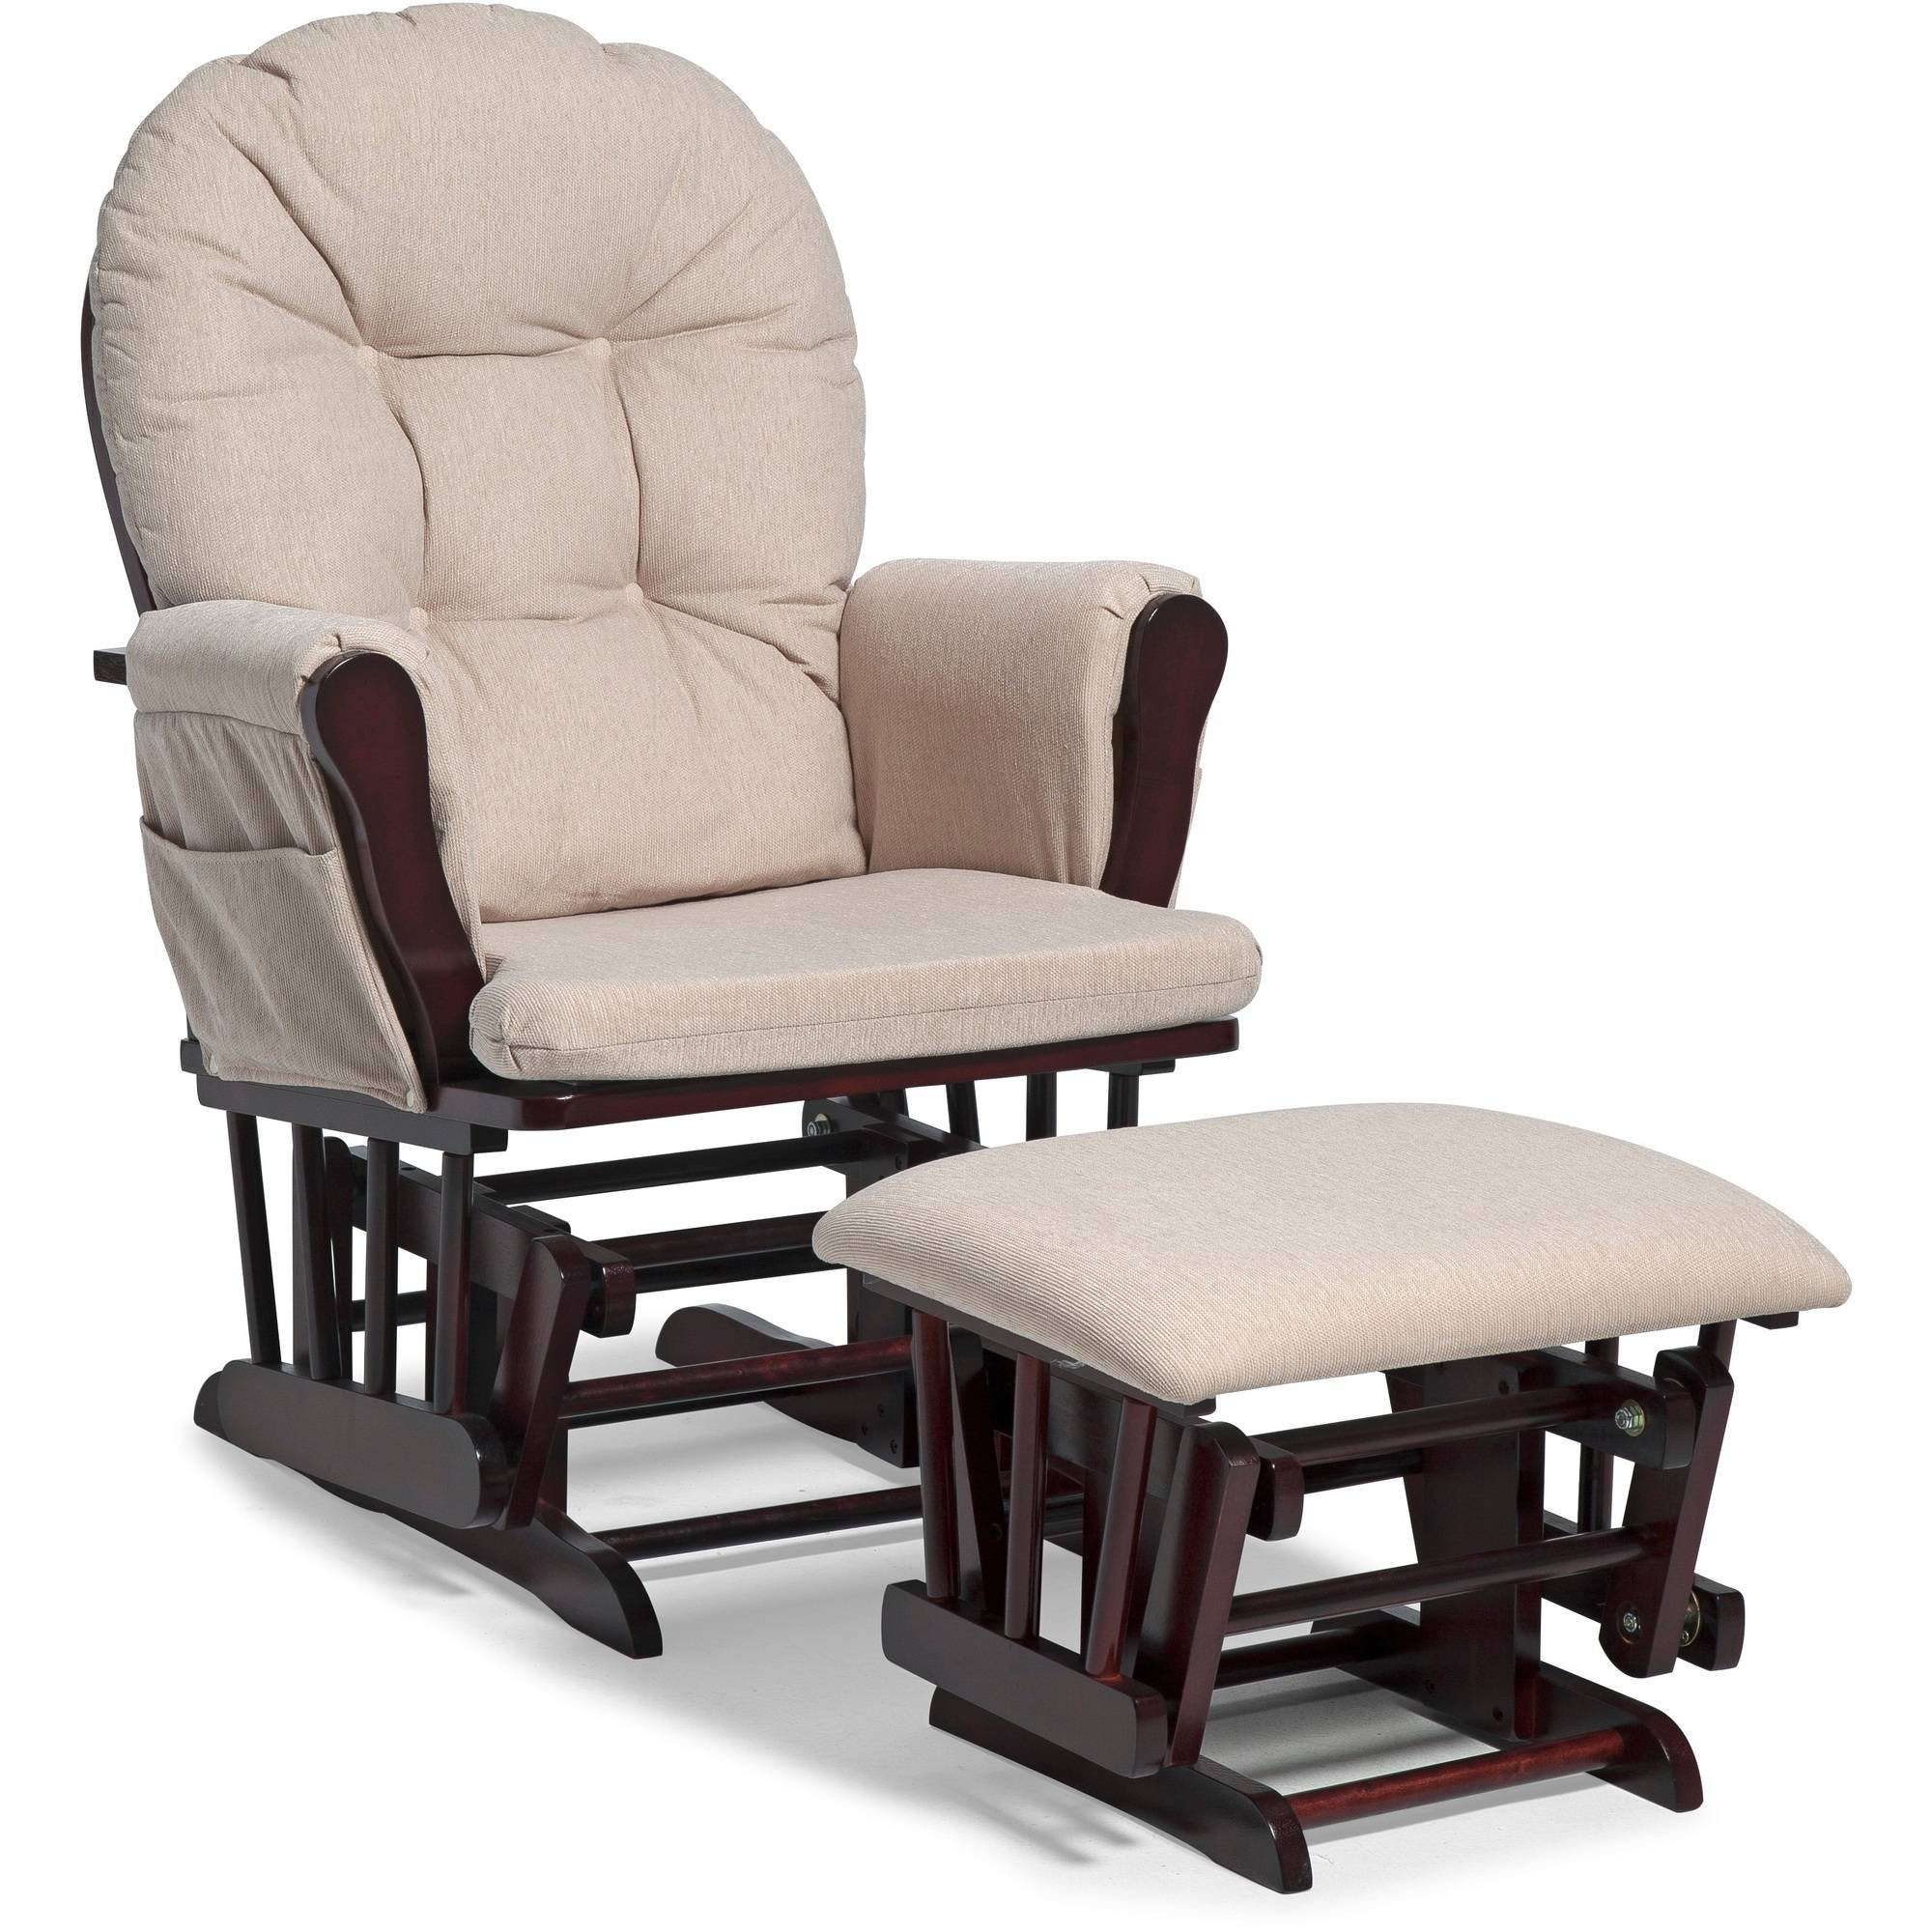 Customize - Storkcraft Glider and Ottoman, Cherry Finish